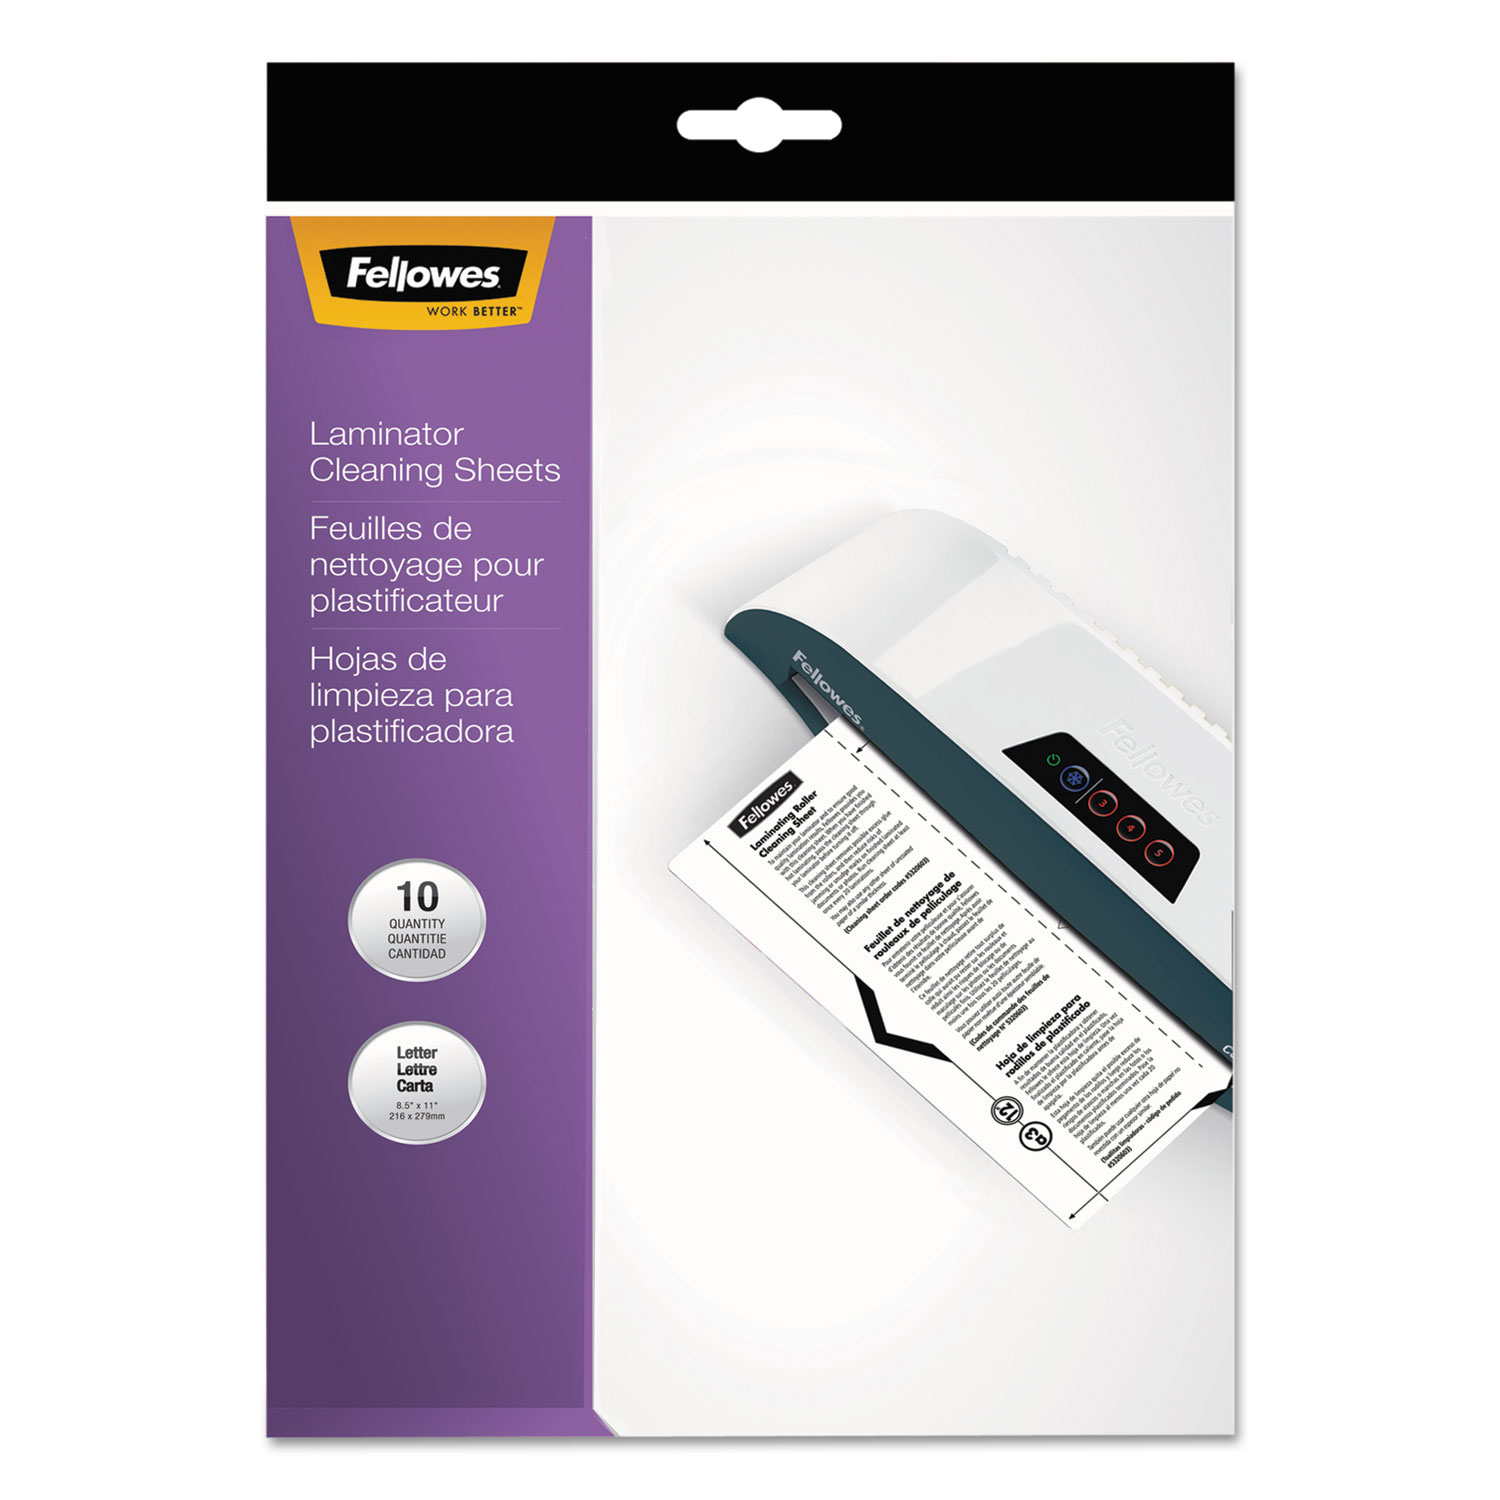 """Laminator Cleaning Sheets, 3 to 10 mil, 8.5"""" x 11"""", White, 10/Pack"""